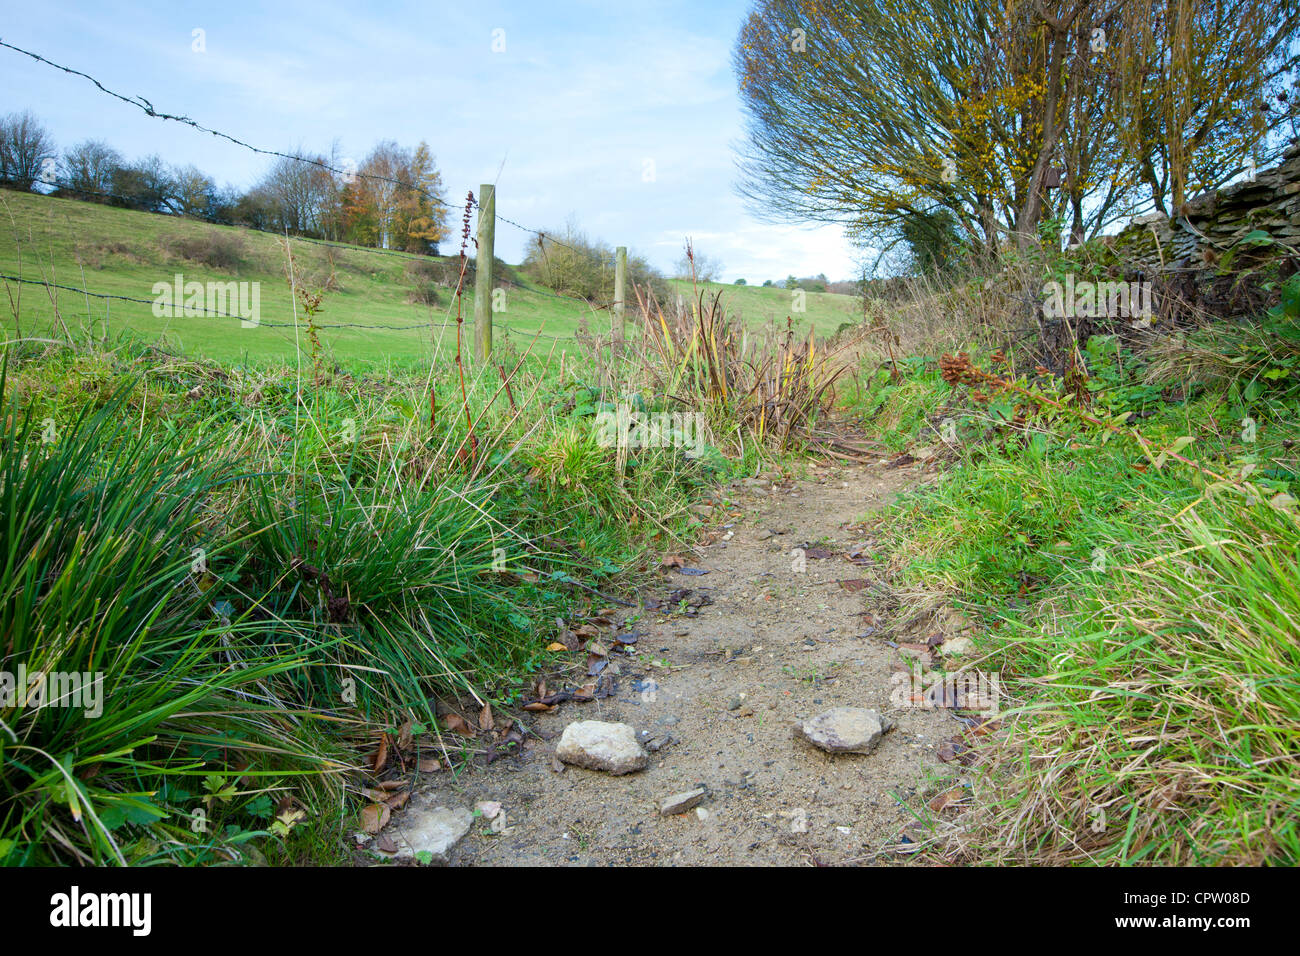 Dry weather causes Cotswolds stream to run dry, Swinbrook, Oxfordshire, UK - Stock Image